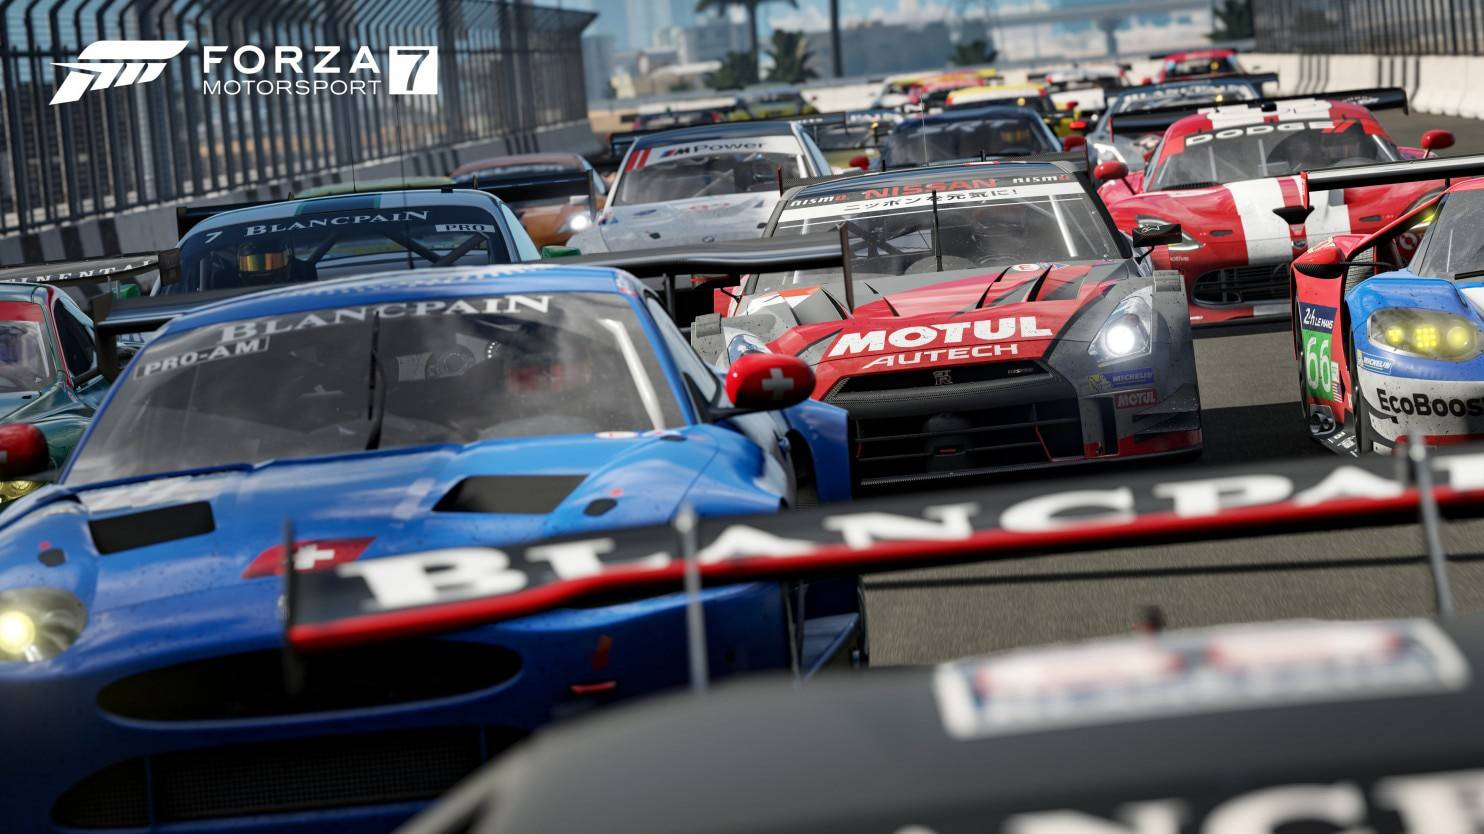 Will Forza 7 look as good on the console as it does in the demos?